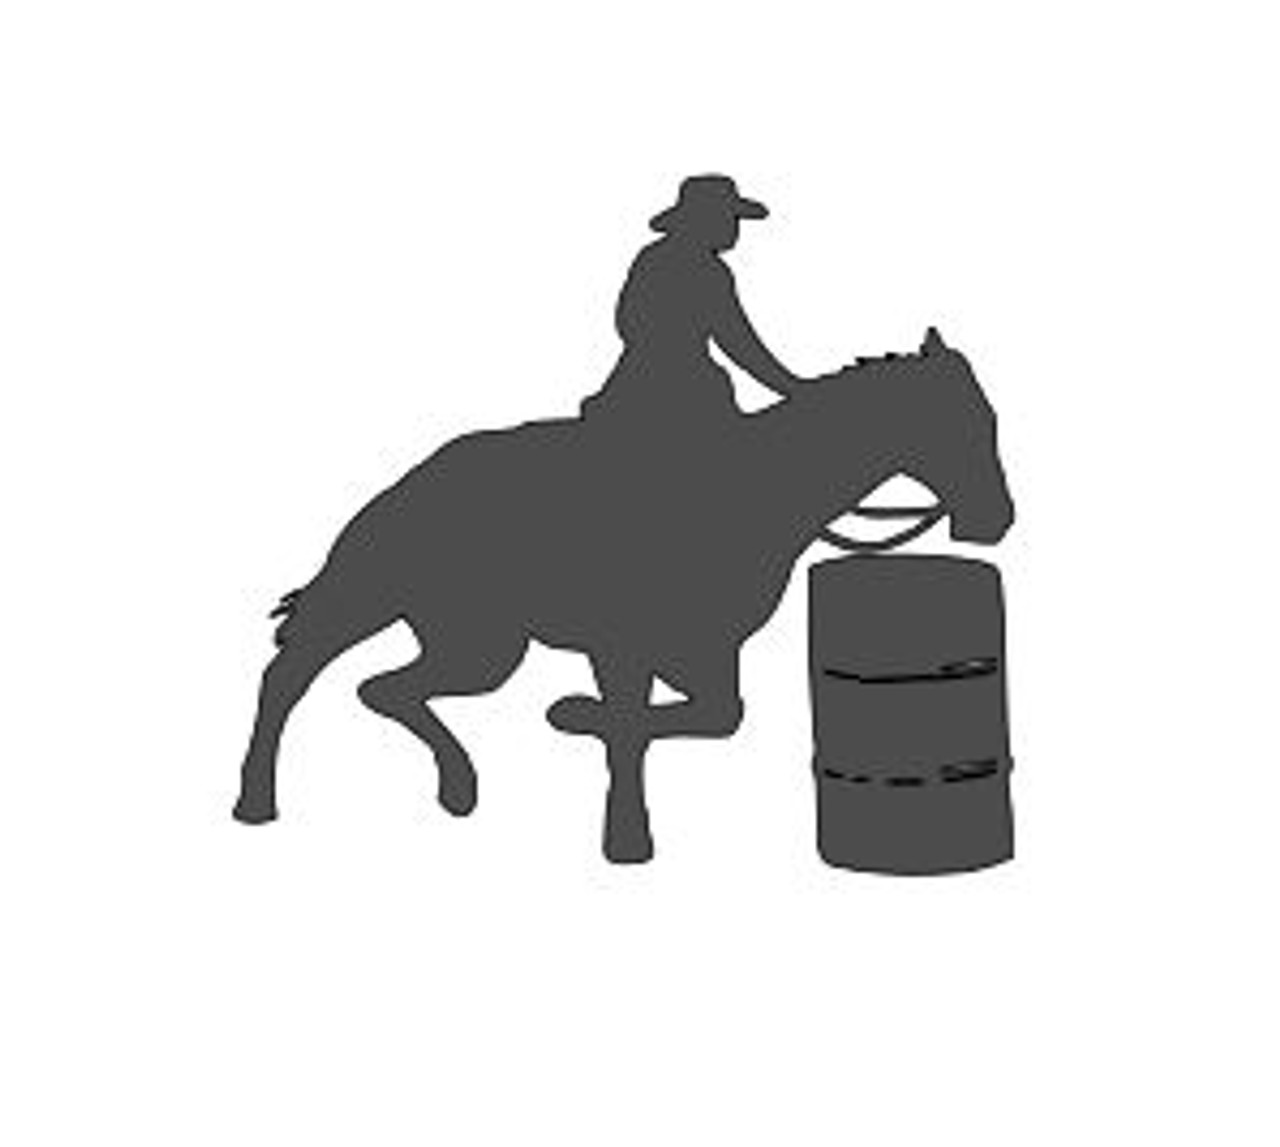 "Barrel Racing - Cowgirl on Horse - Vinyl Decal Sticker - 5"" x 4.5"""